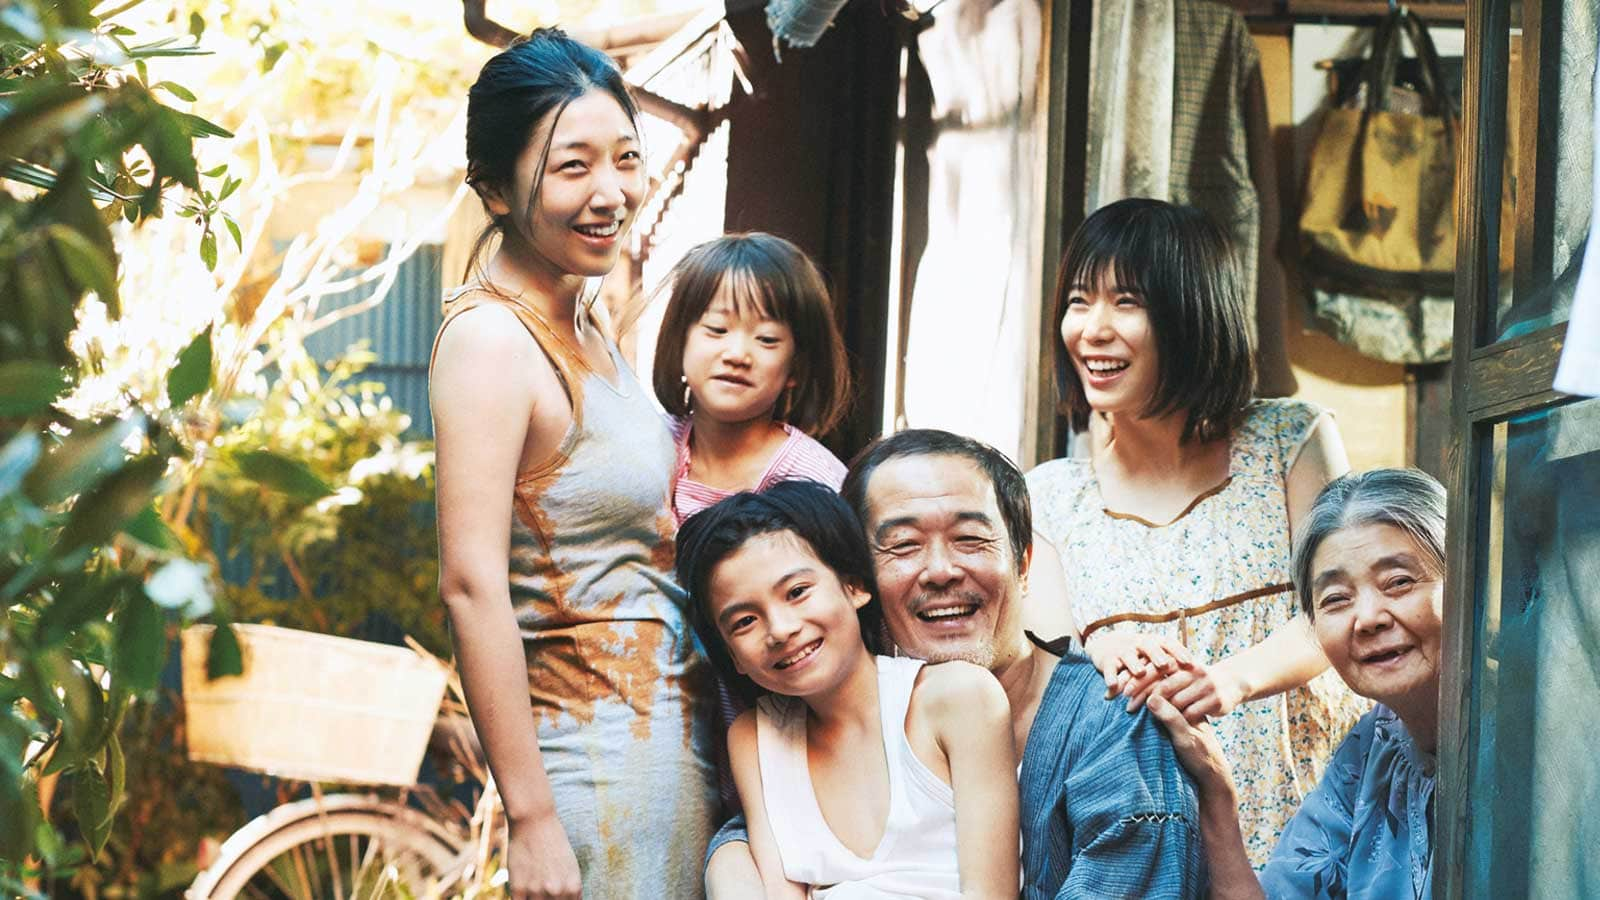 Shoplifters Review - OC Movie Reviews - Movie Reviews, Movie News, Documentary Reviews, Short Films, Short Film Reviews, Trailers, Movie Trailers, Interviews, film reviews, film news, hollywood, indie films, documentaries